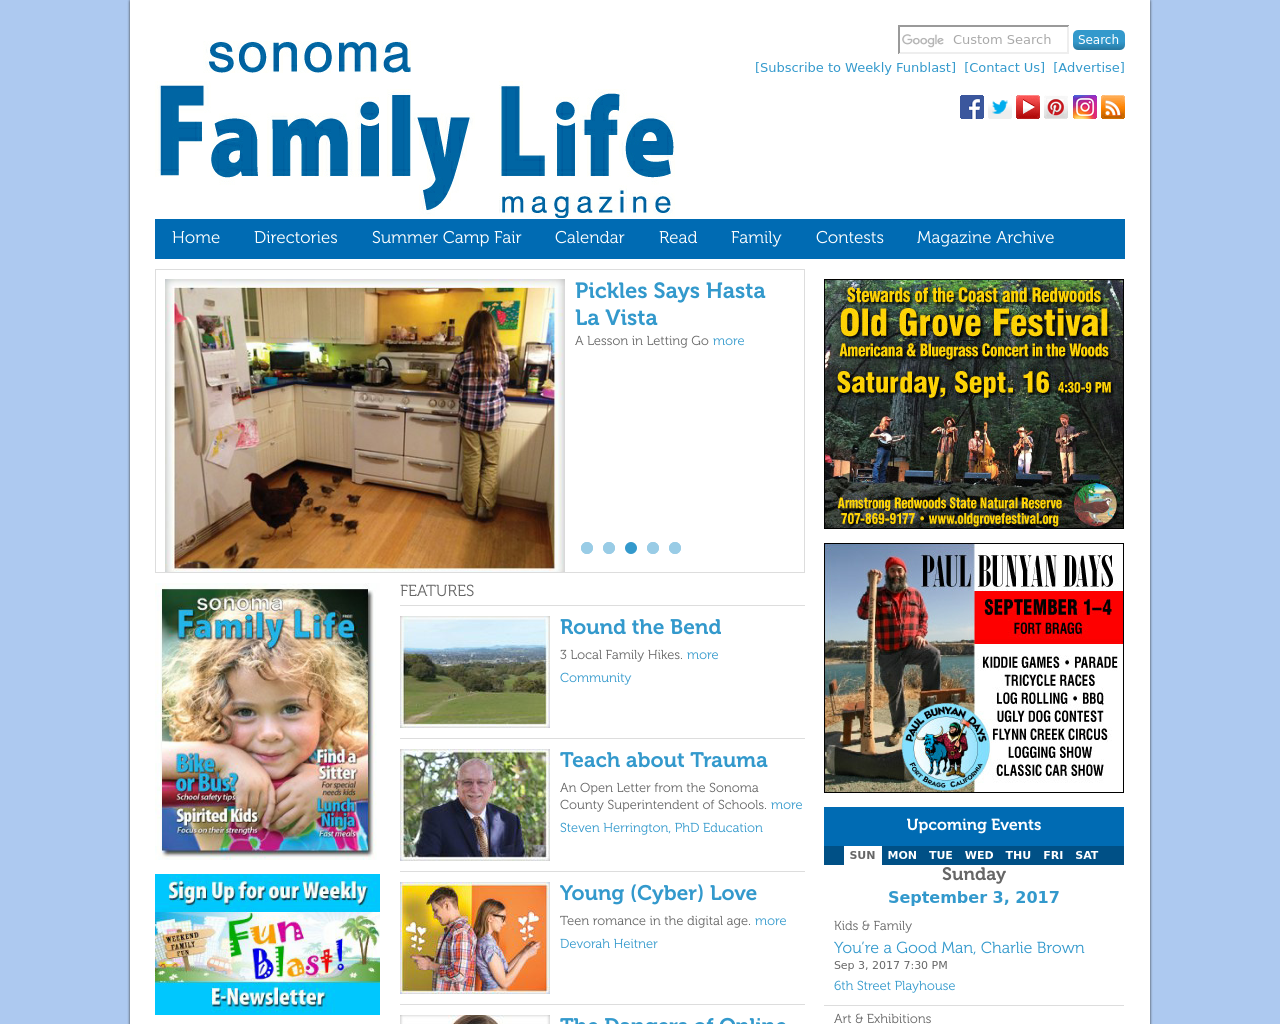 Sonoma-Family-Life-Magazine-Advertising-Reviews-Pricing